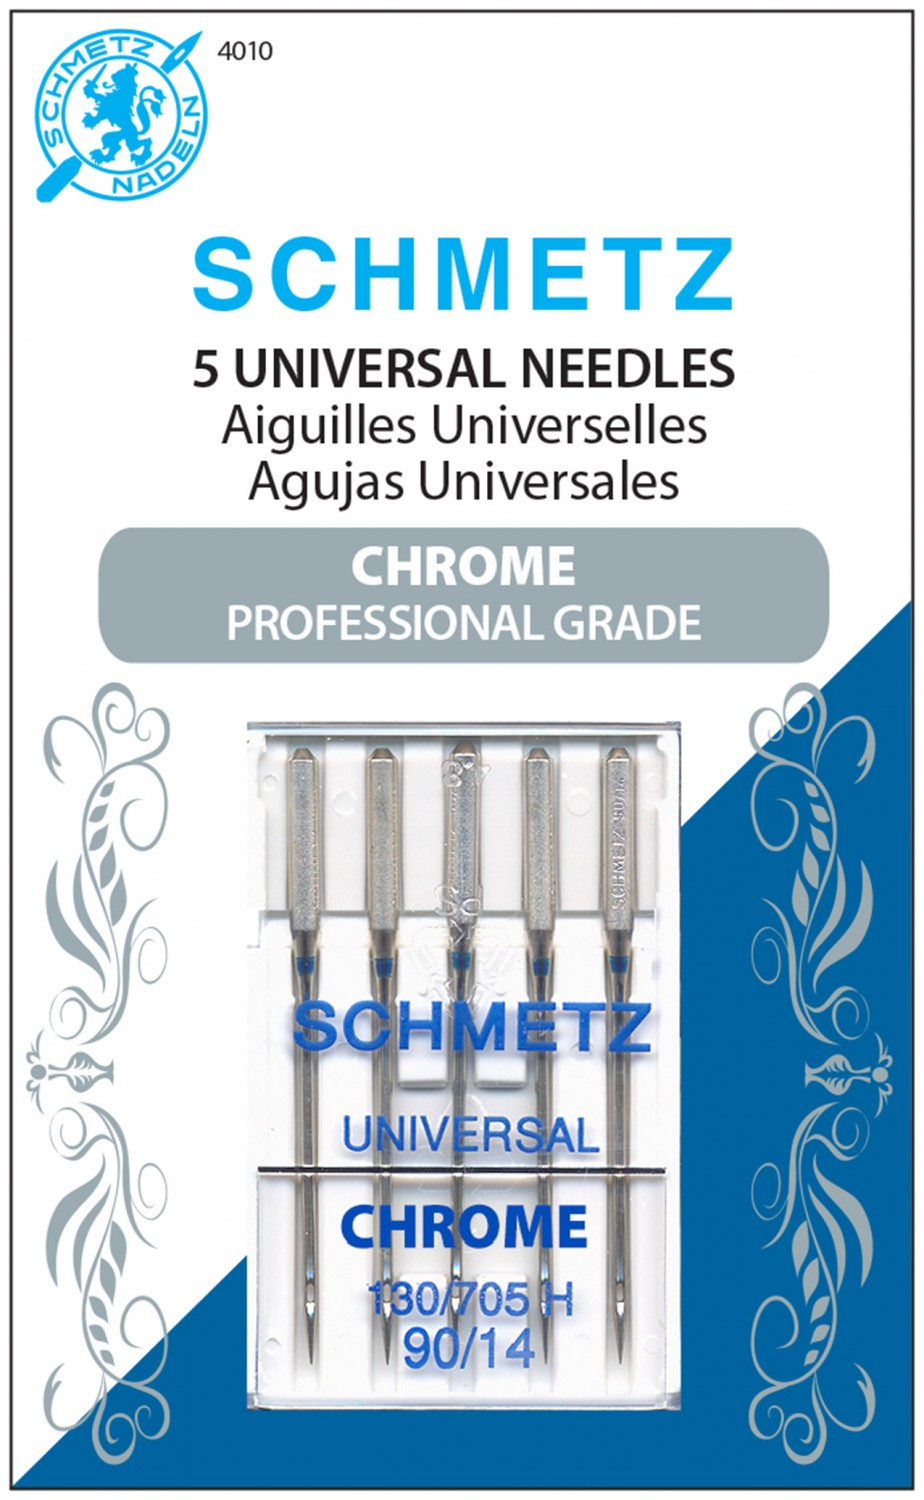 Schmetz Chrome Universal Needles - 90/14